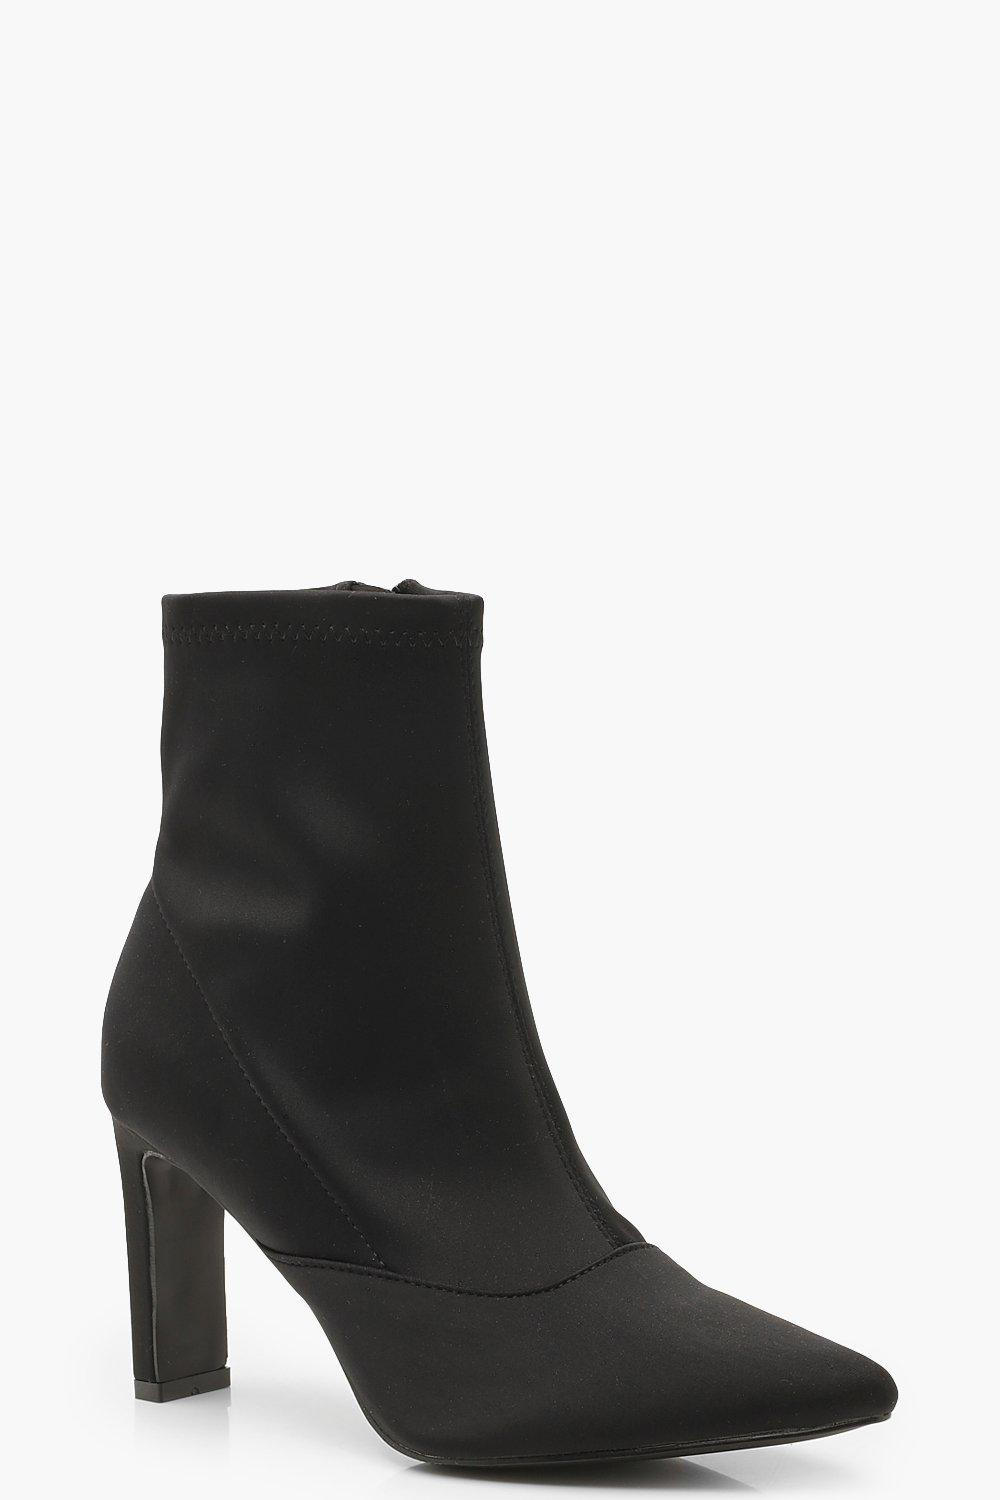 039e16d5b141 Stretch Flat Mid Heel Sock Boots. Hover to zoom